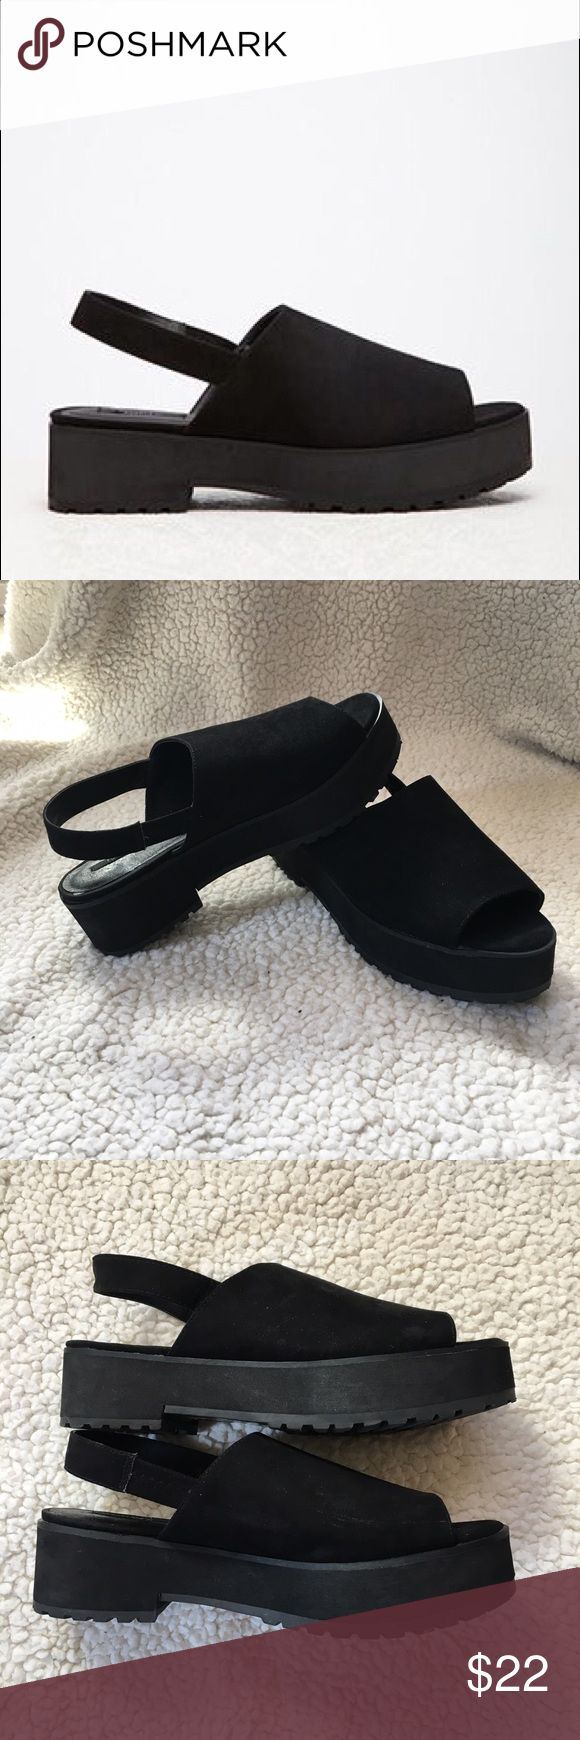 "Forever 21 Faux Suede Slingbacks Black Shoes are in excellent condition. Only worn twice. Insides have a patch missing from a sticker that had super kung fu grip. It took a little piece off. Otherwise in great condition. Size 7. 1.5"" rise Forever 21 Shoes Sandals"